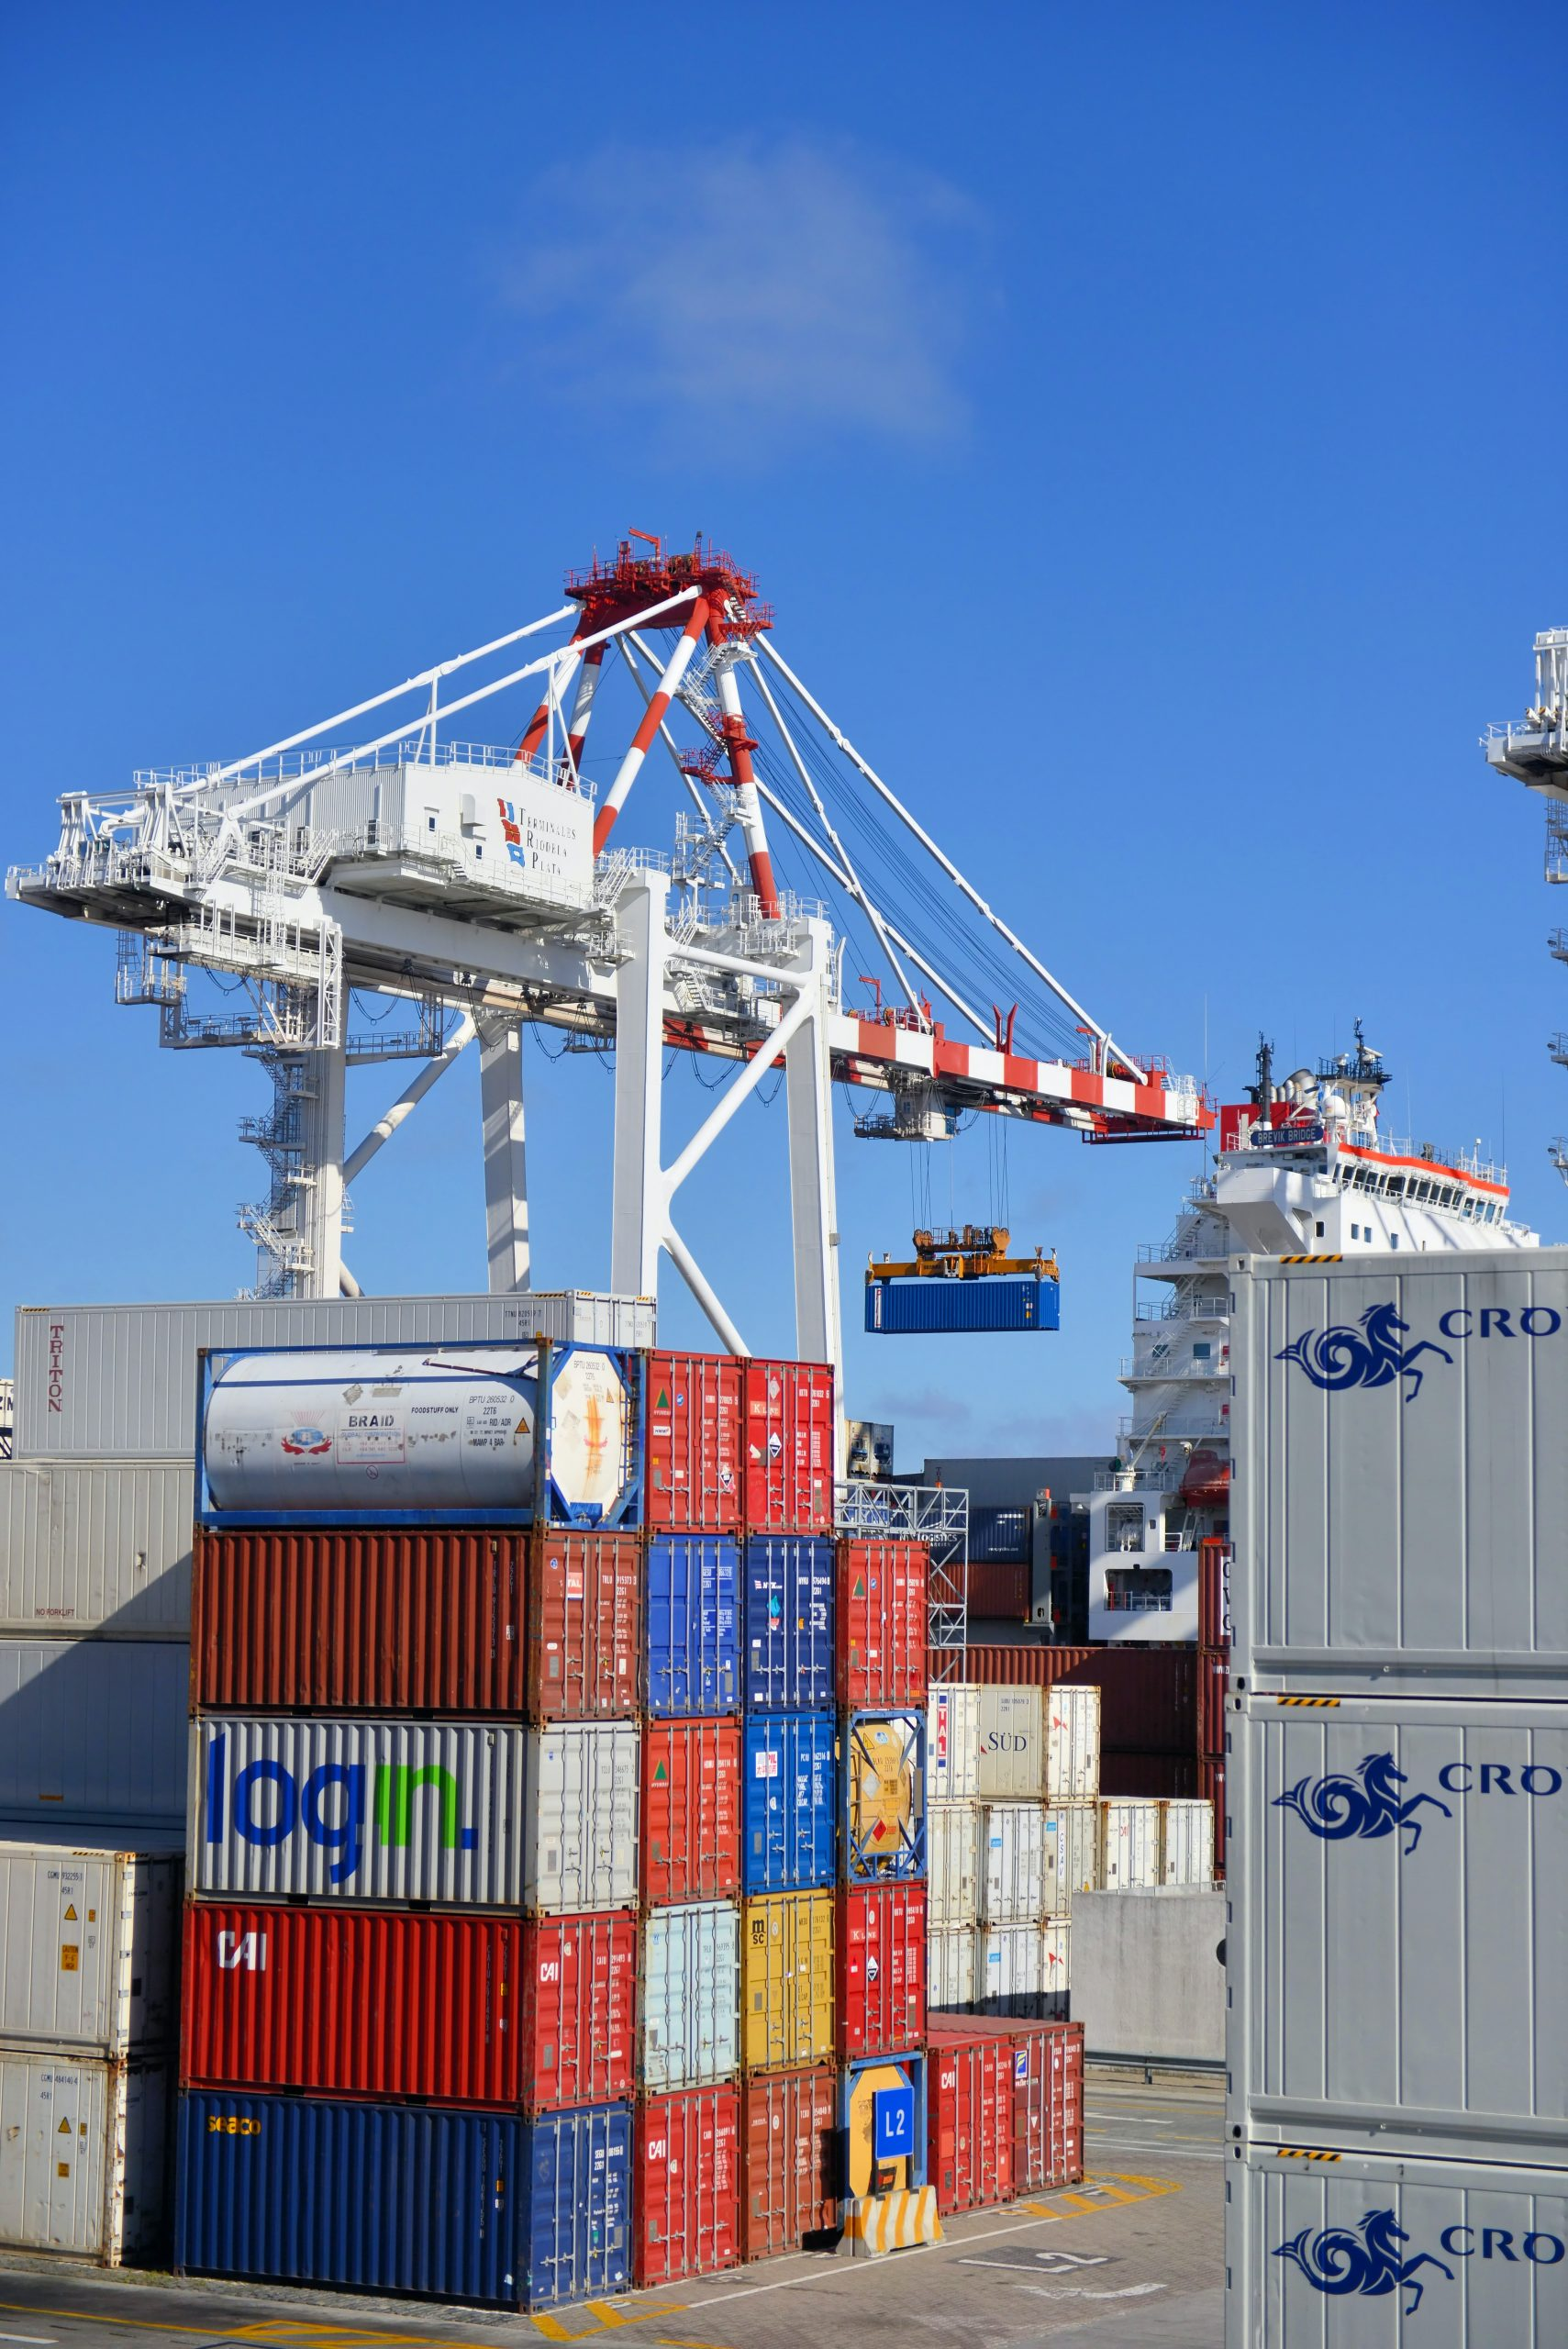 A crane moves shipping containers.